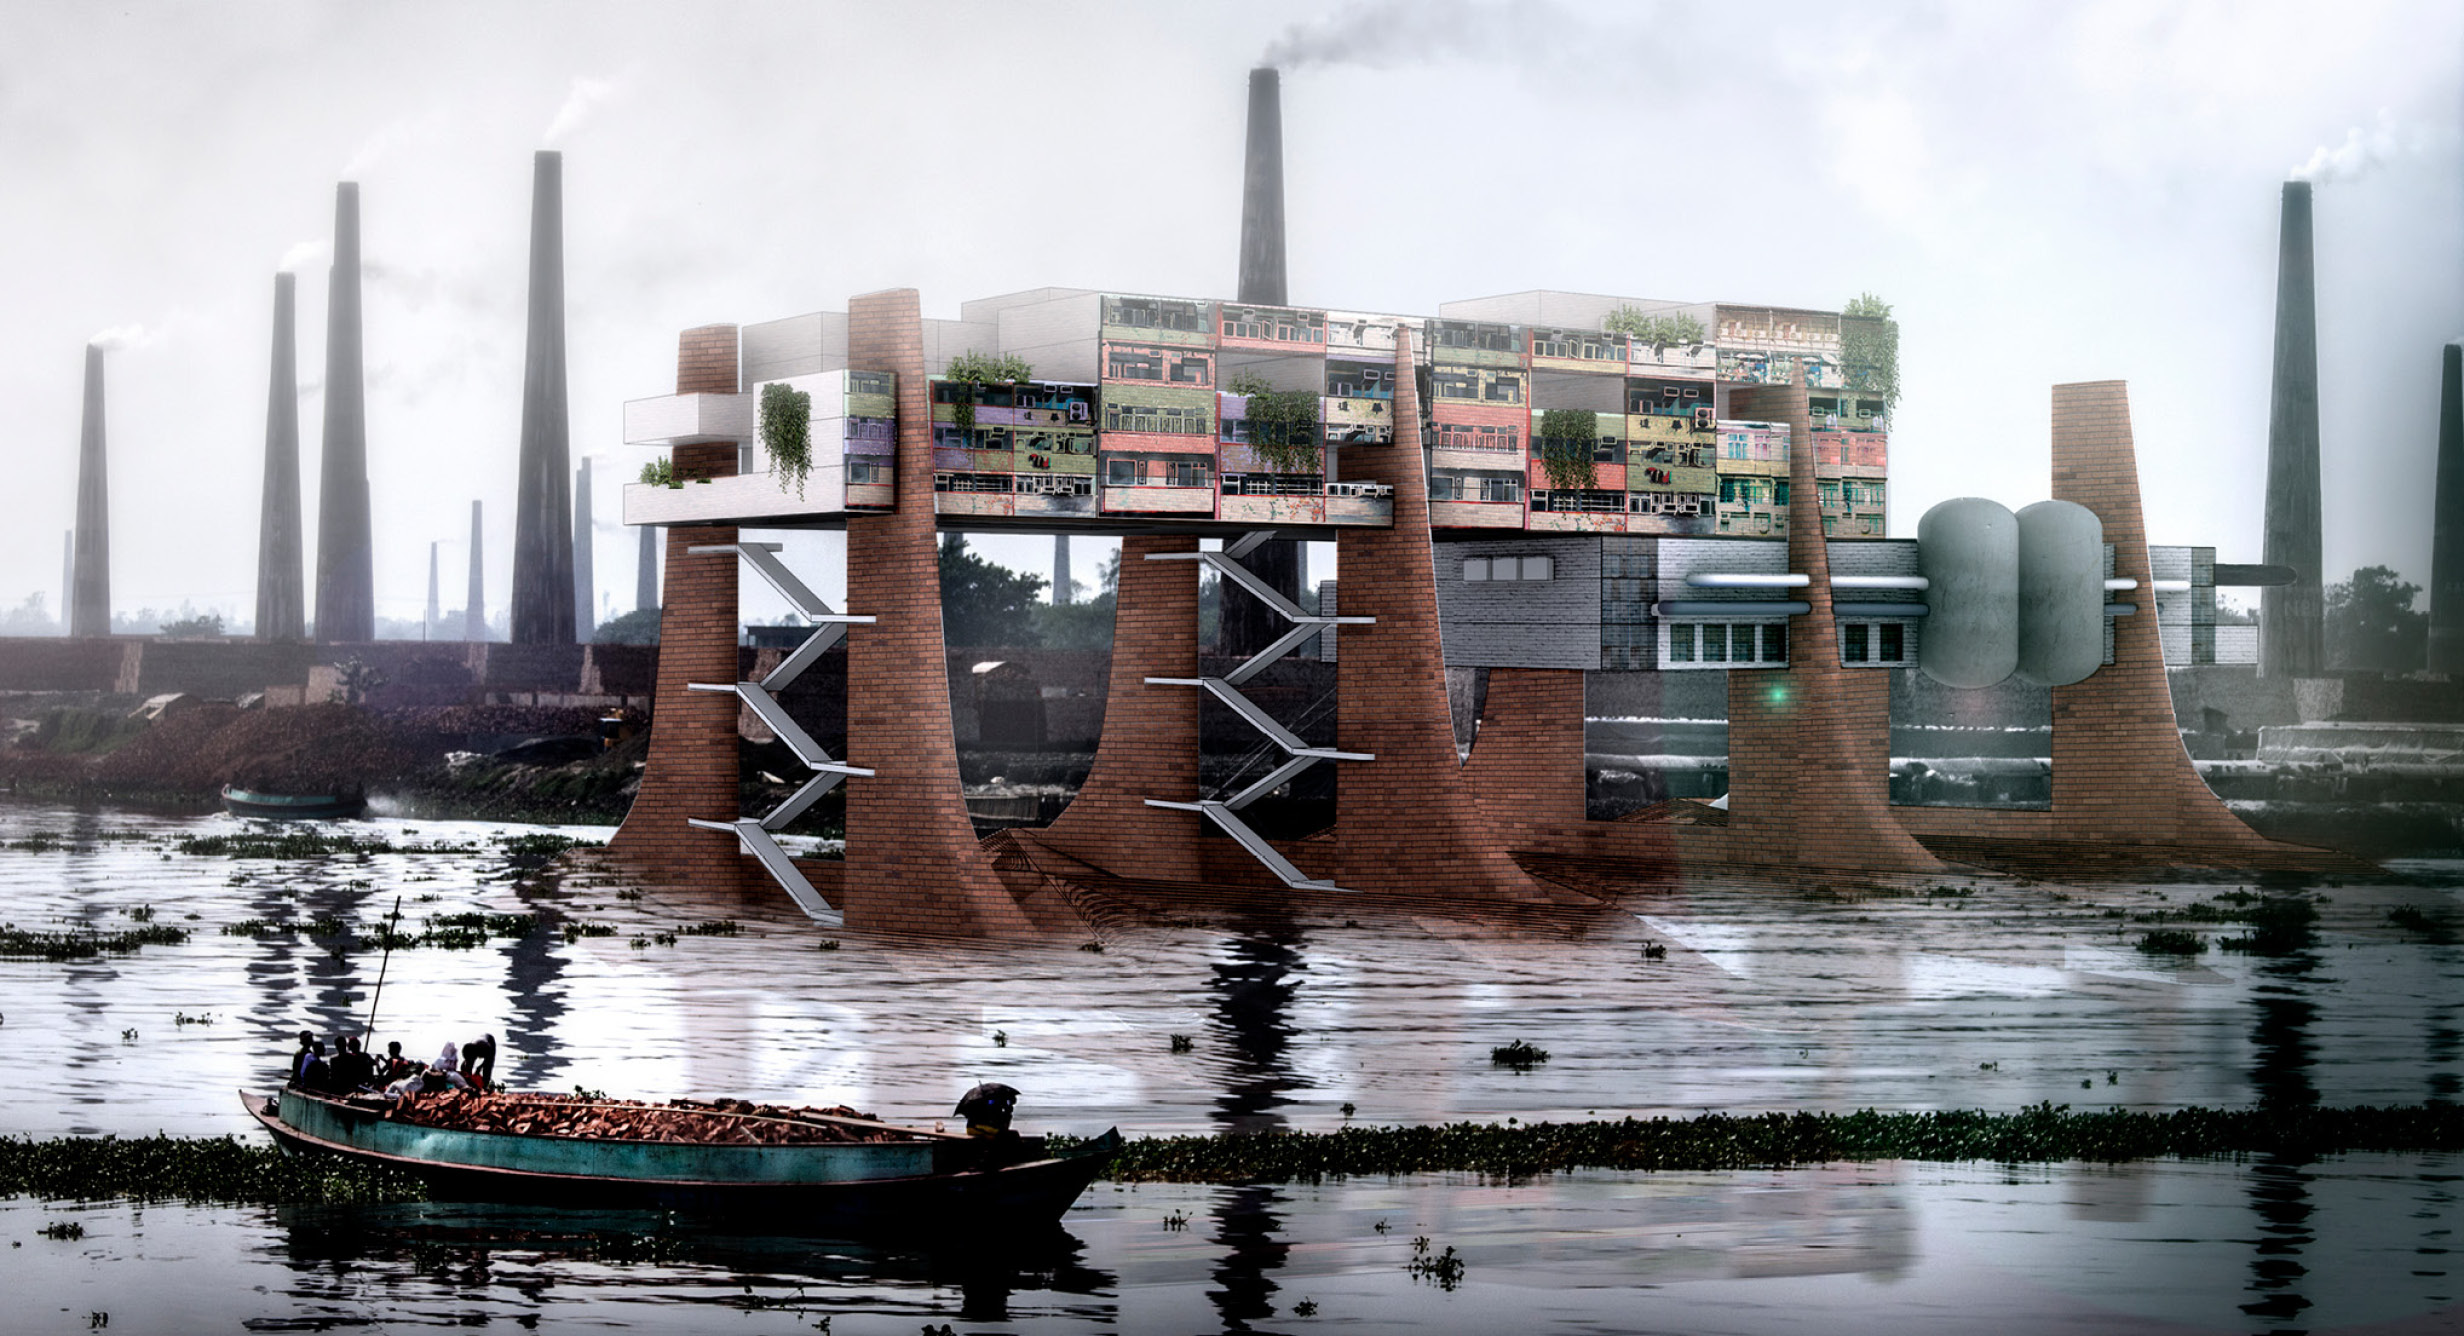 DR/EDGE: HKS' Award Winning Concept to Revive One of the World's Most Polluted Rivers